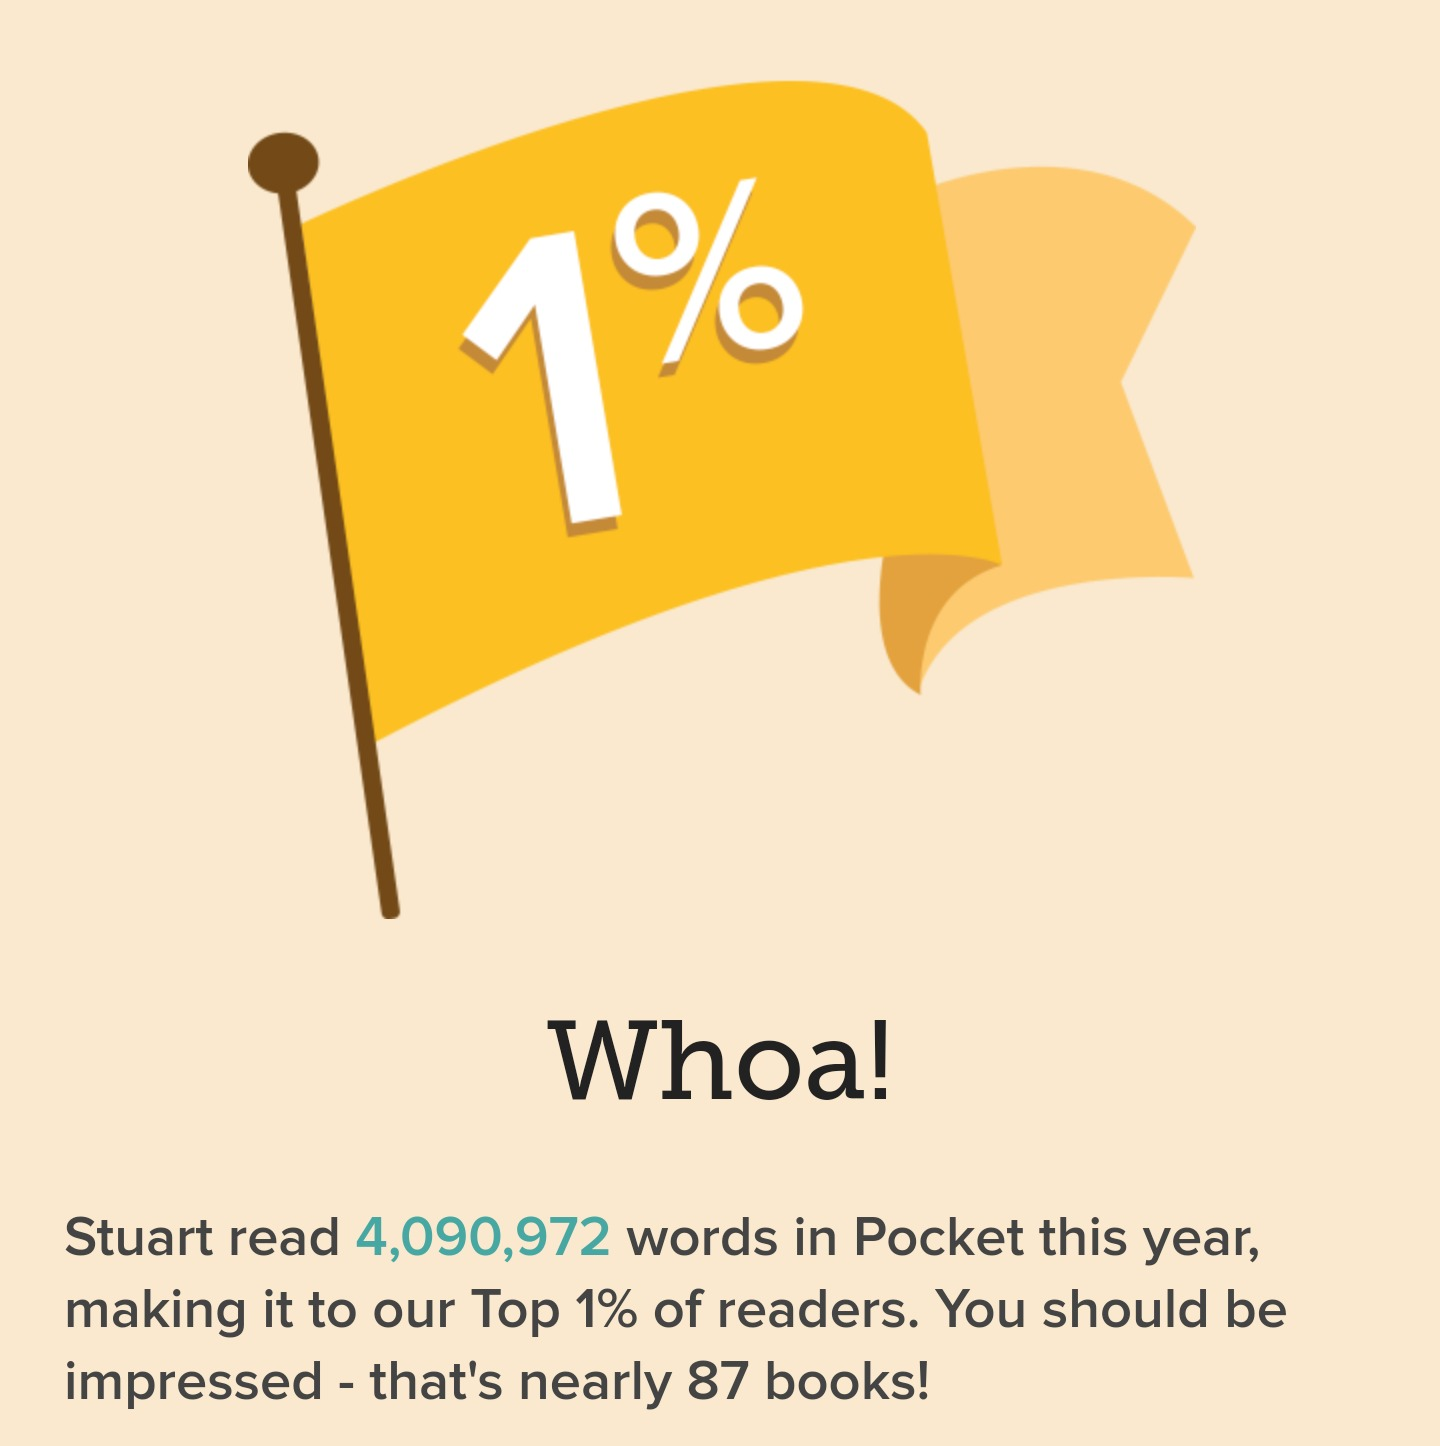 I'm in the 1%